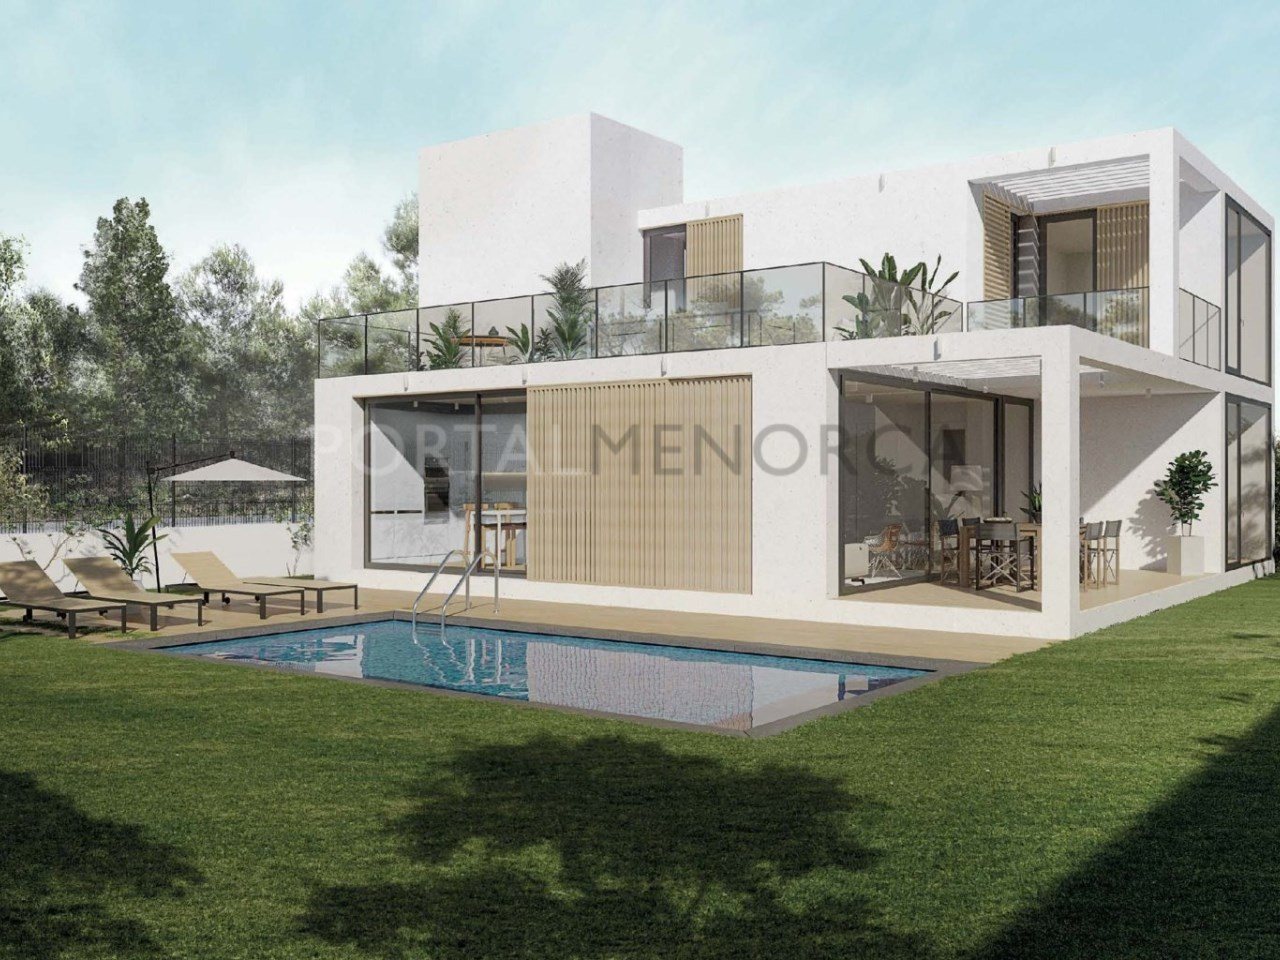 Plot for sale in Cala Blanca, Ciutadella promotion of 6 homes -3D